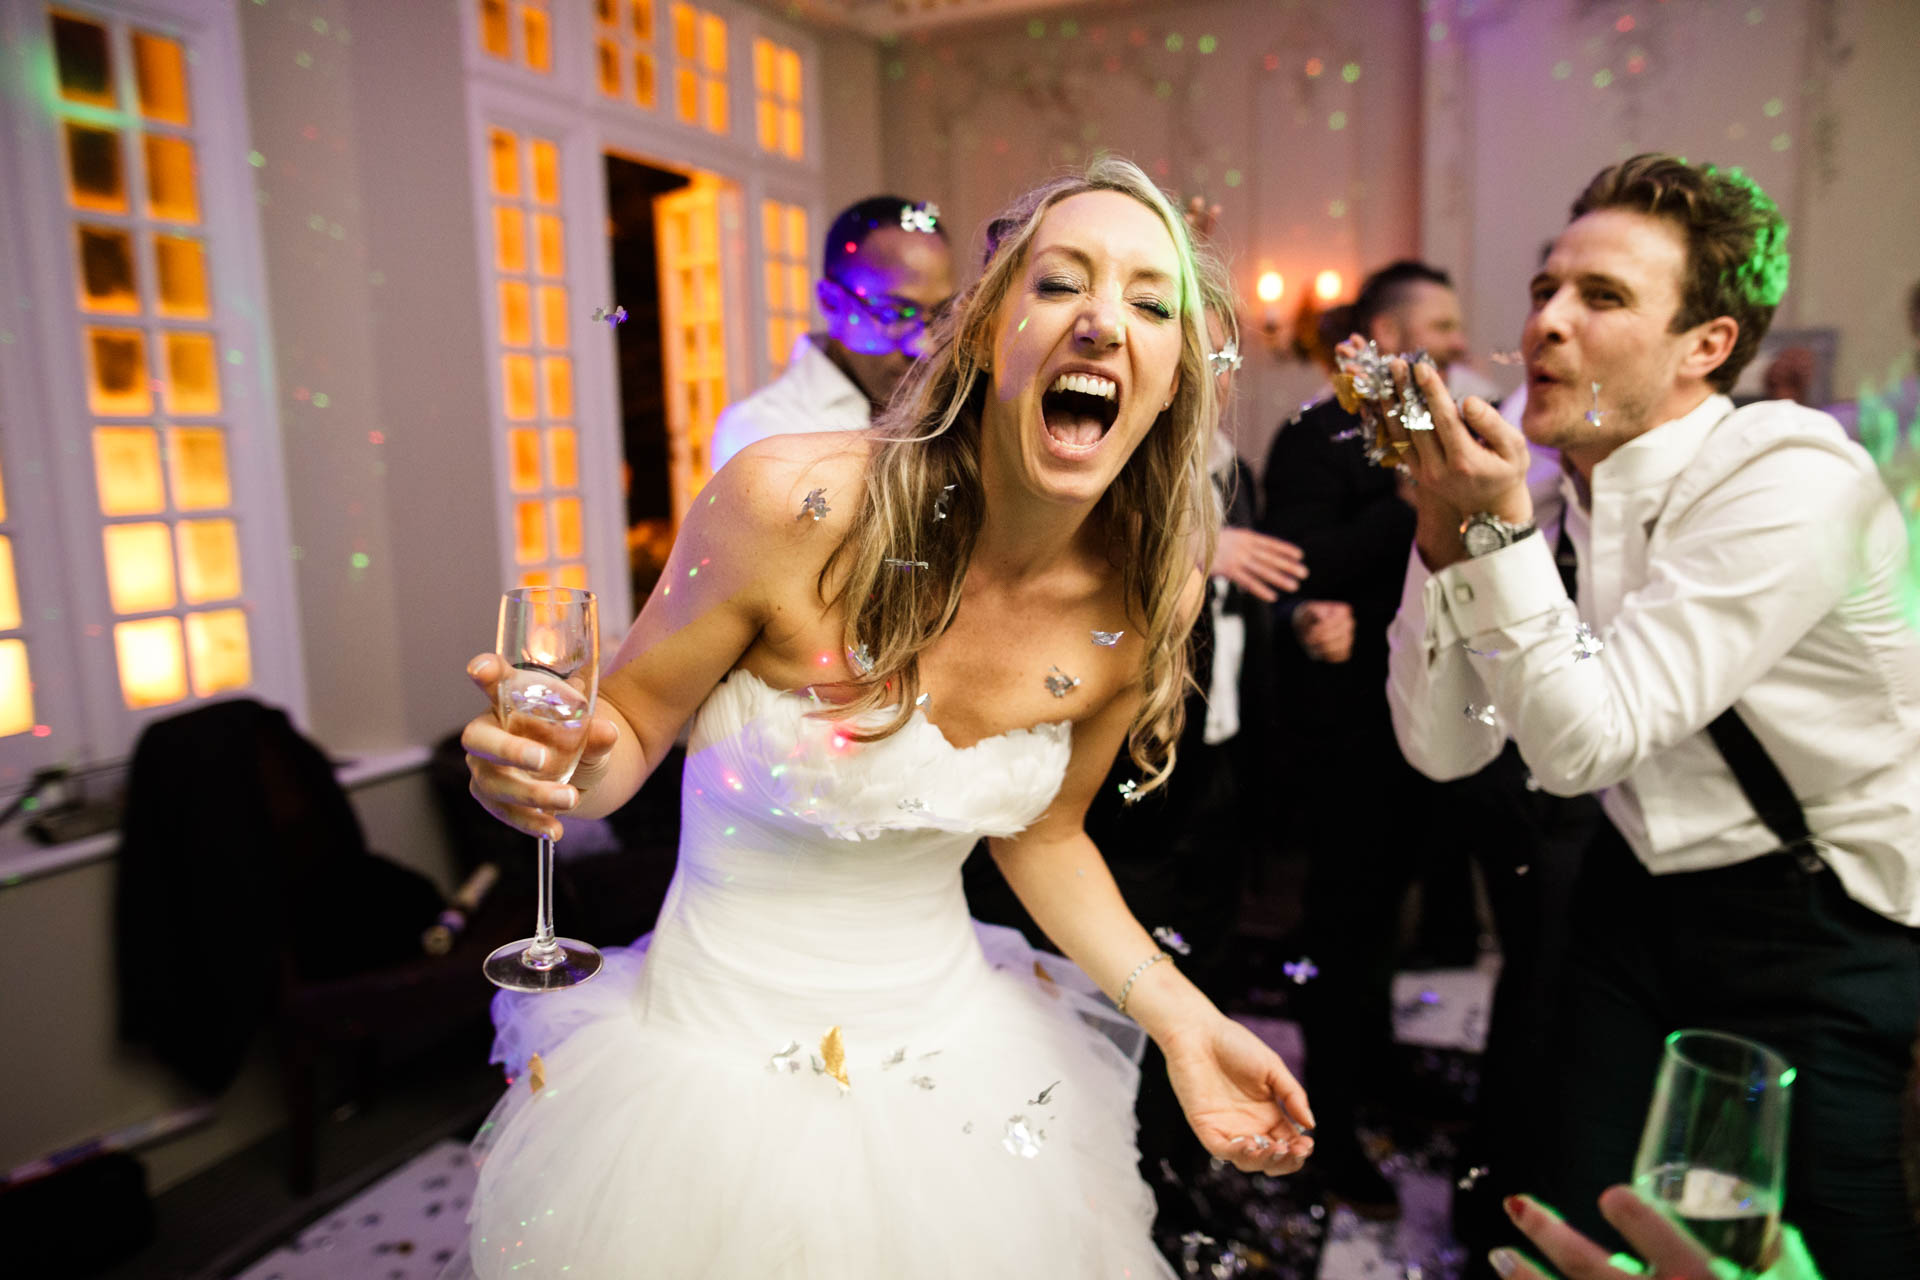 Bride and groom celebrating at their NYE wedding at Chateau Le Chaire, Jersey